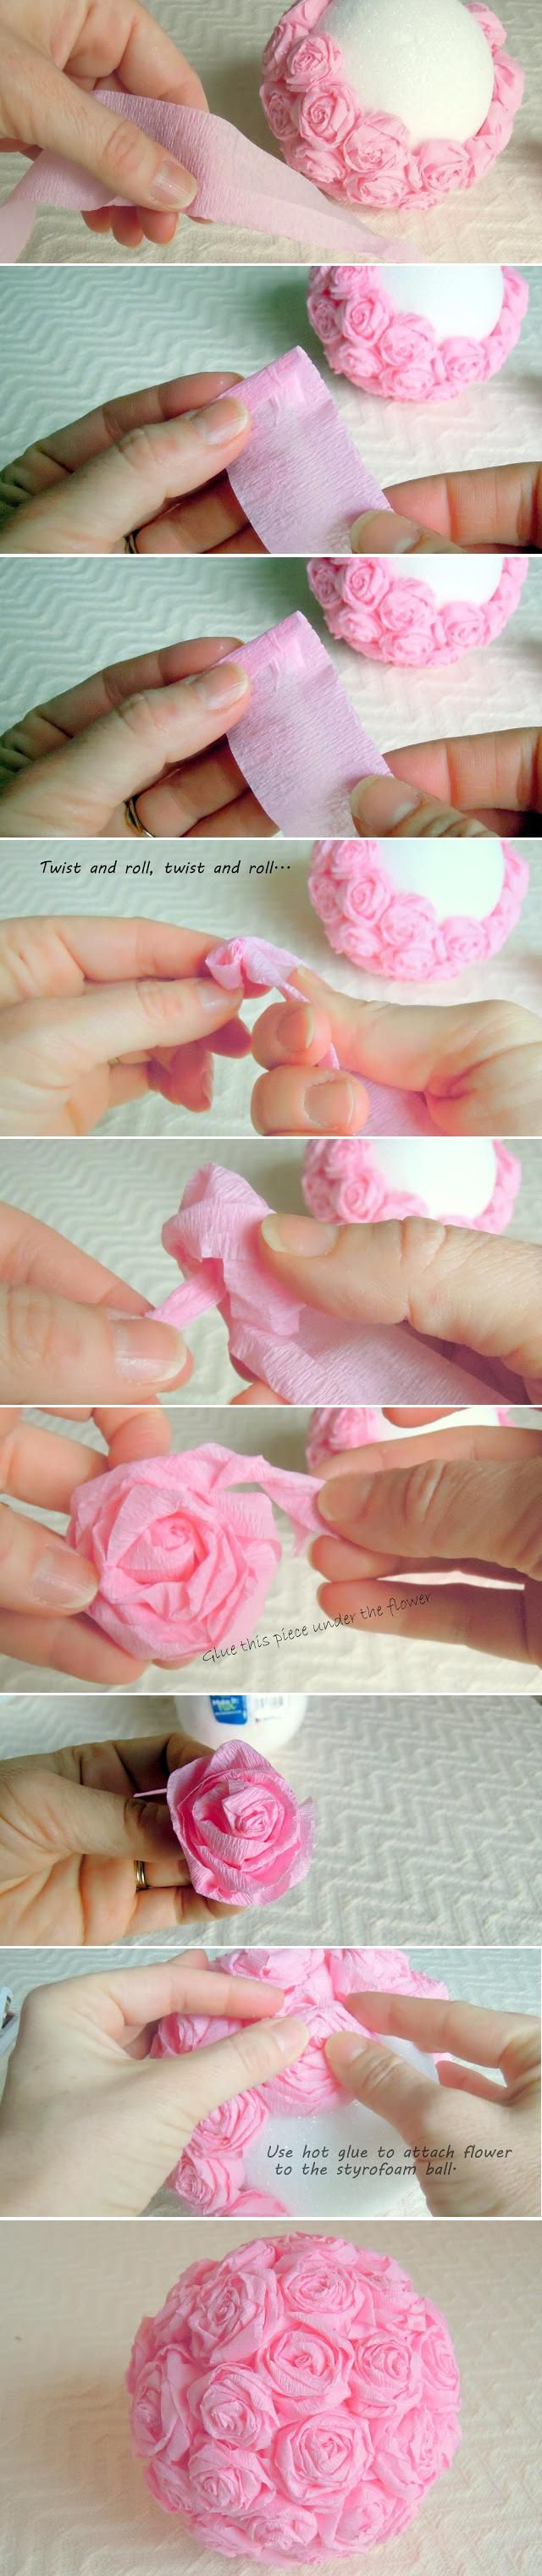 Crative and fun paper crafts youll love crepe paper flowers for crative and fun paper crafts youll love crepe paper flowers for an elegant mightylinksfo